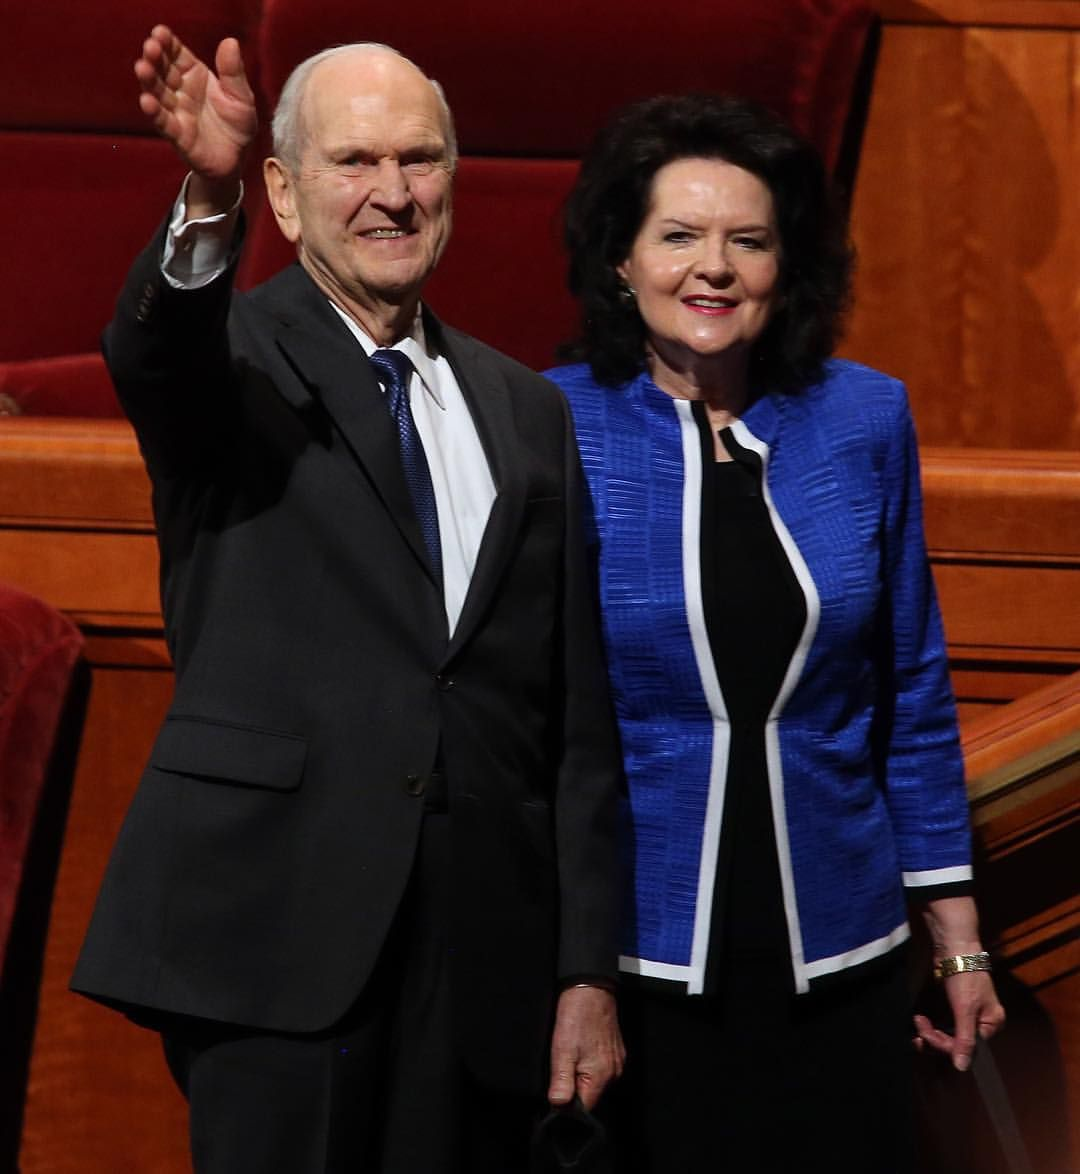 President Russell M. Nelson Of The Church Of Jesus Christ